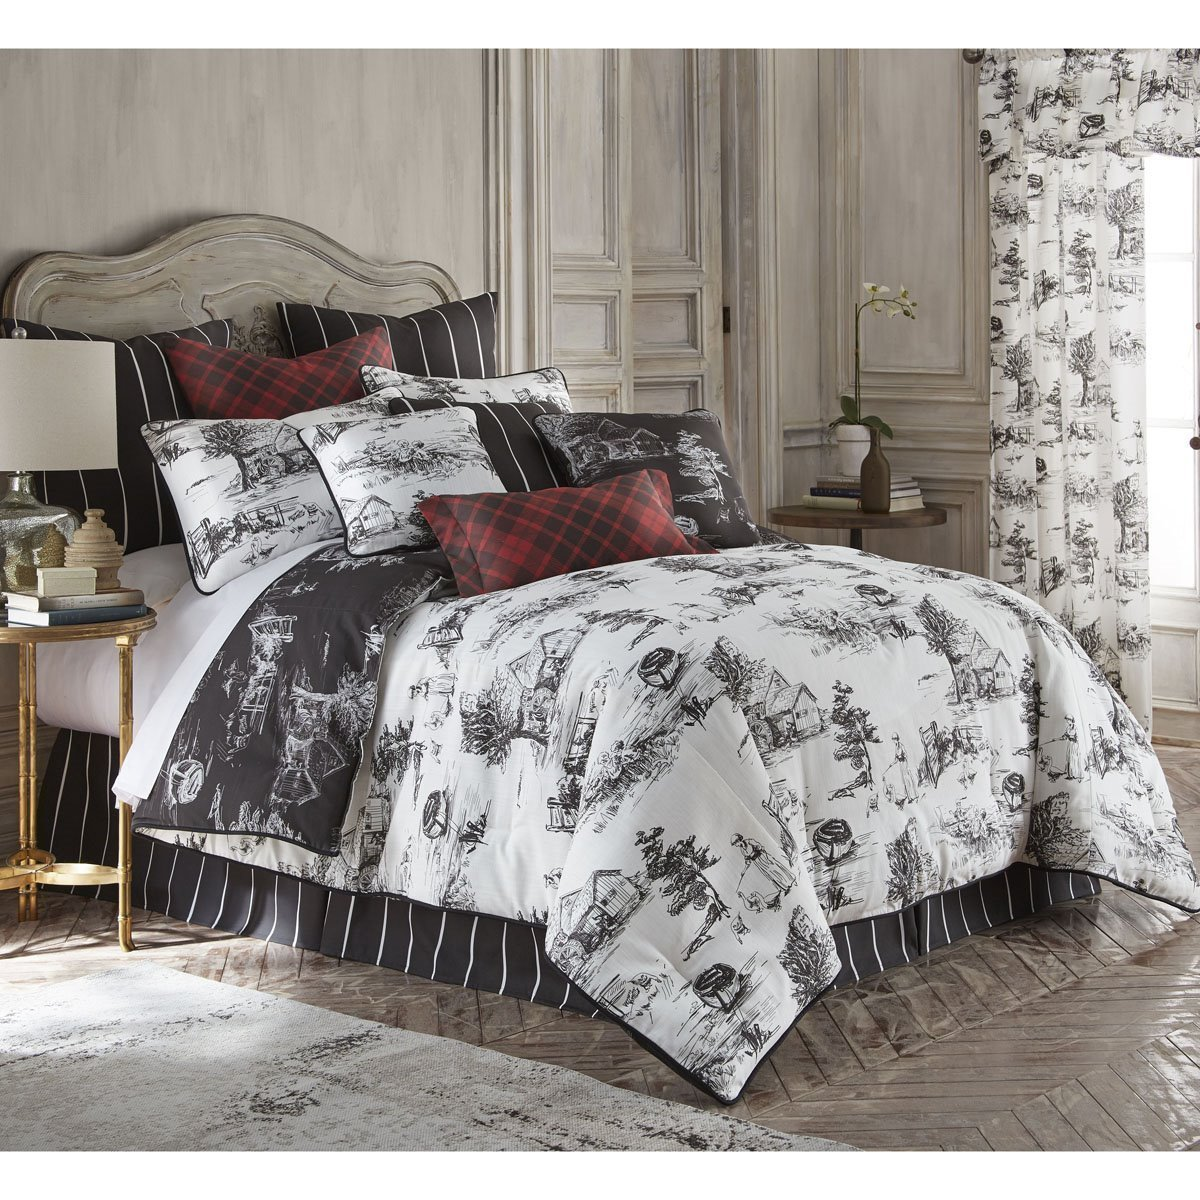 Toile Duvet Cover Toile Back In Black Reversible Duvet Cover Set Twin By